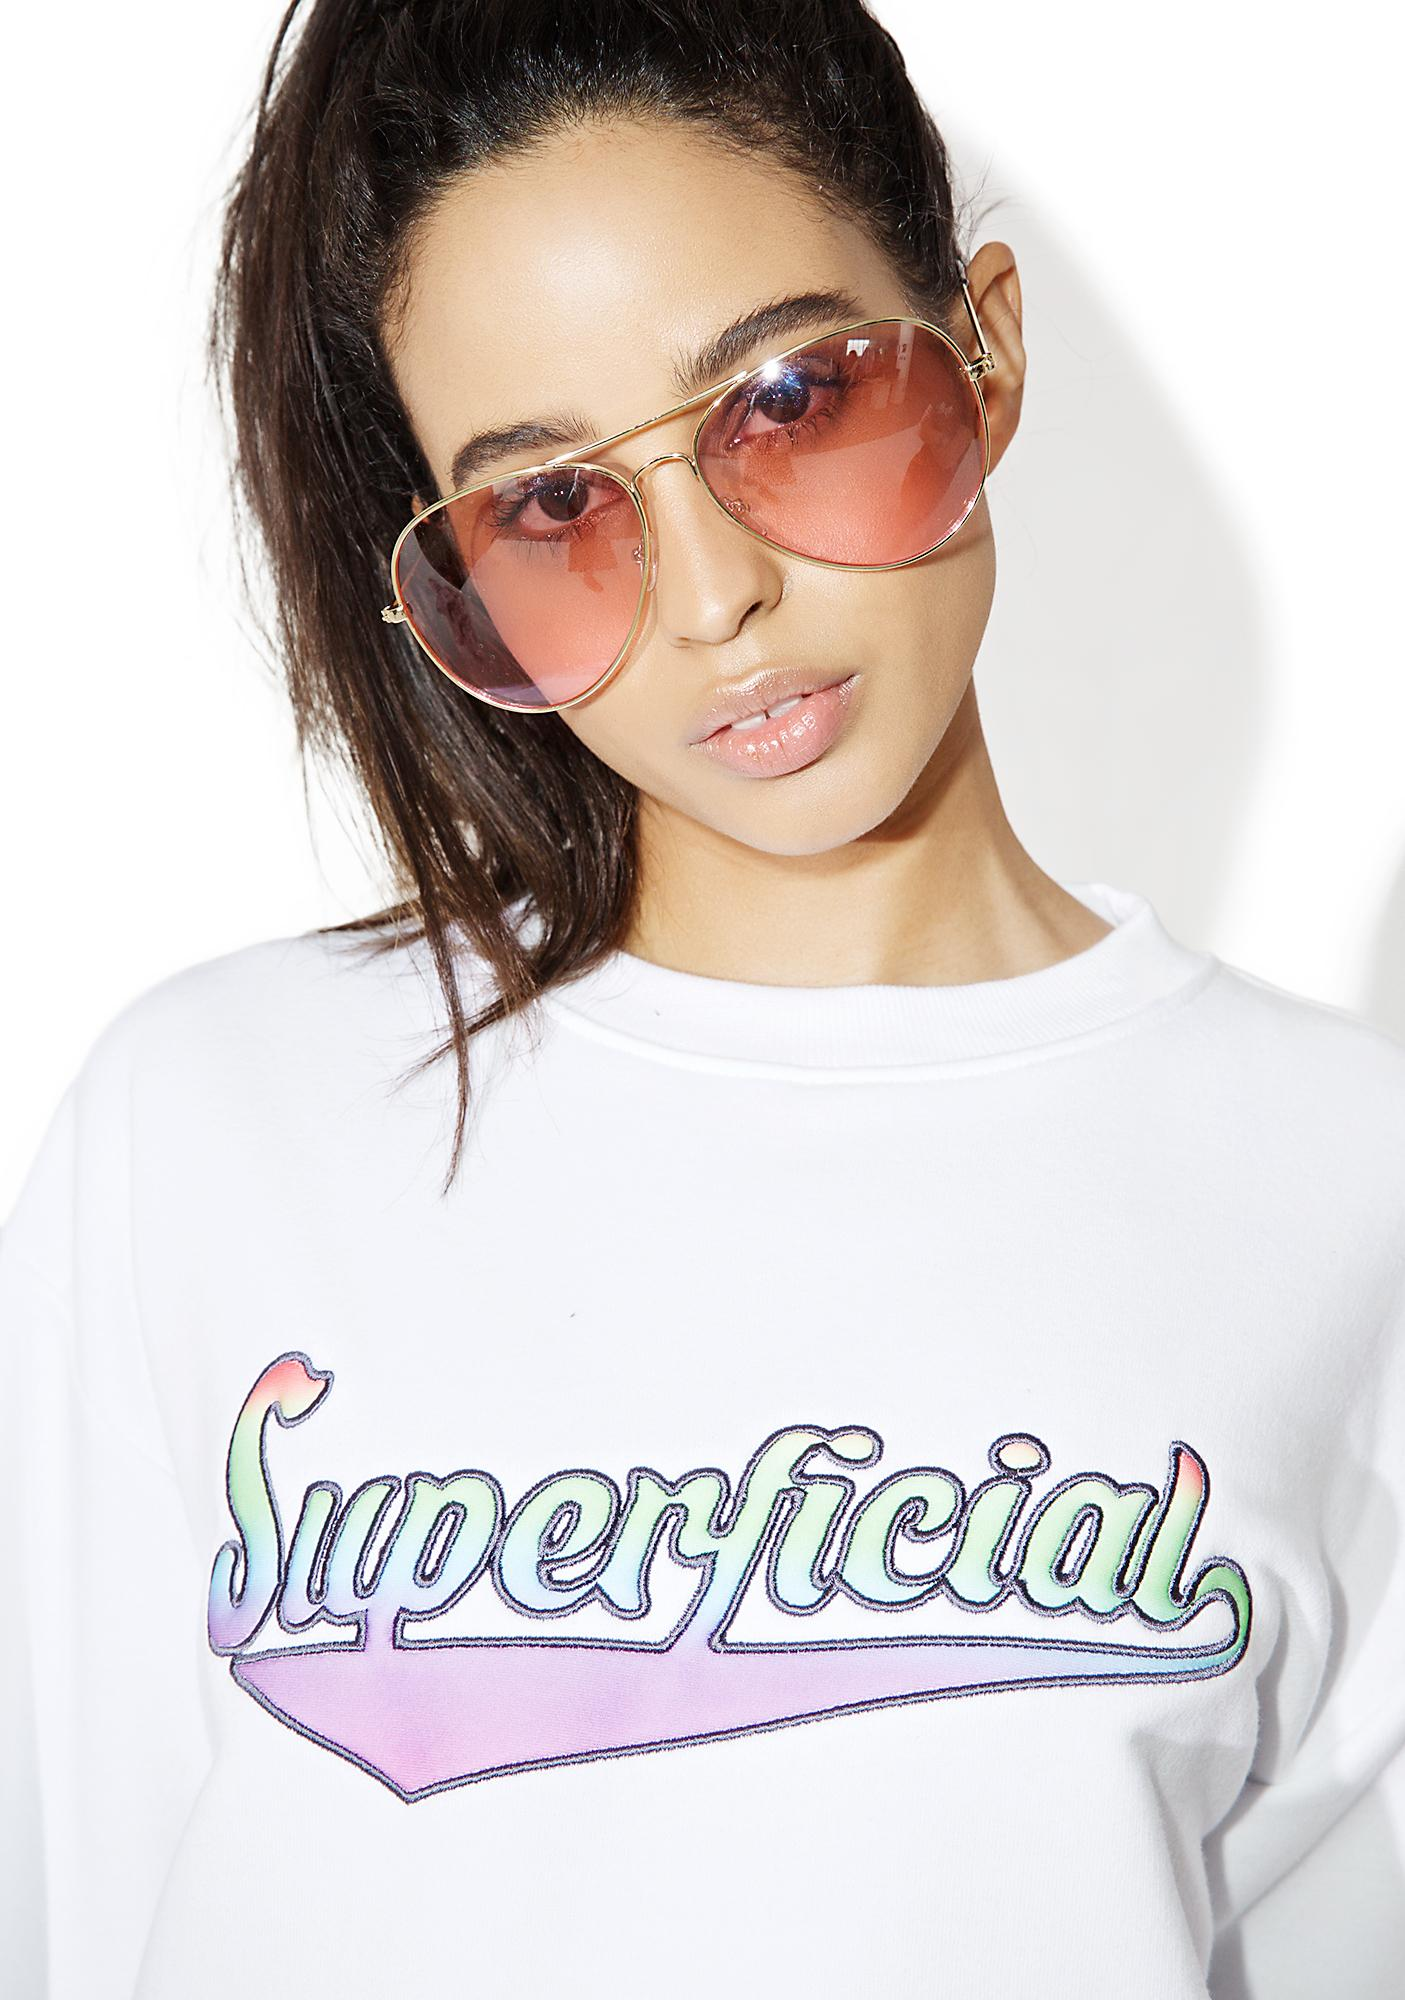 Local Heroes Superficial Sweatshirt